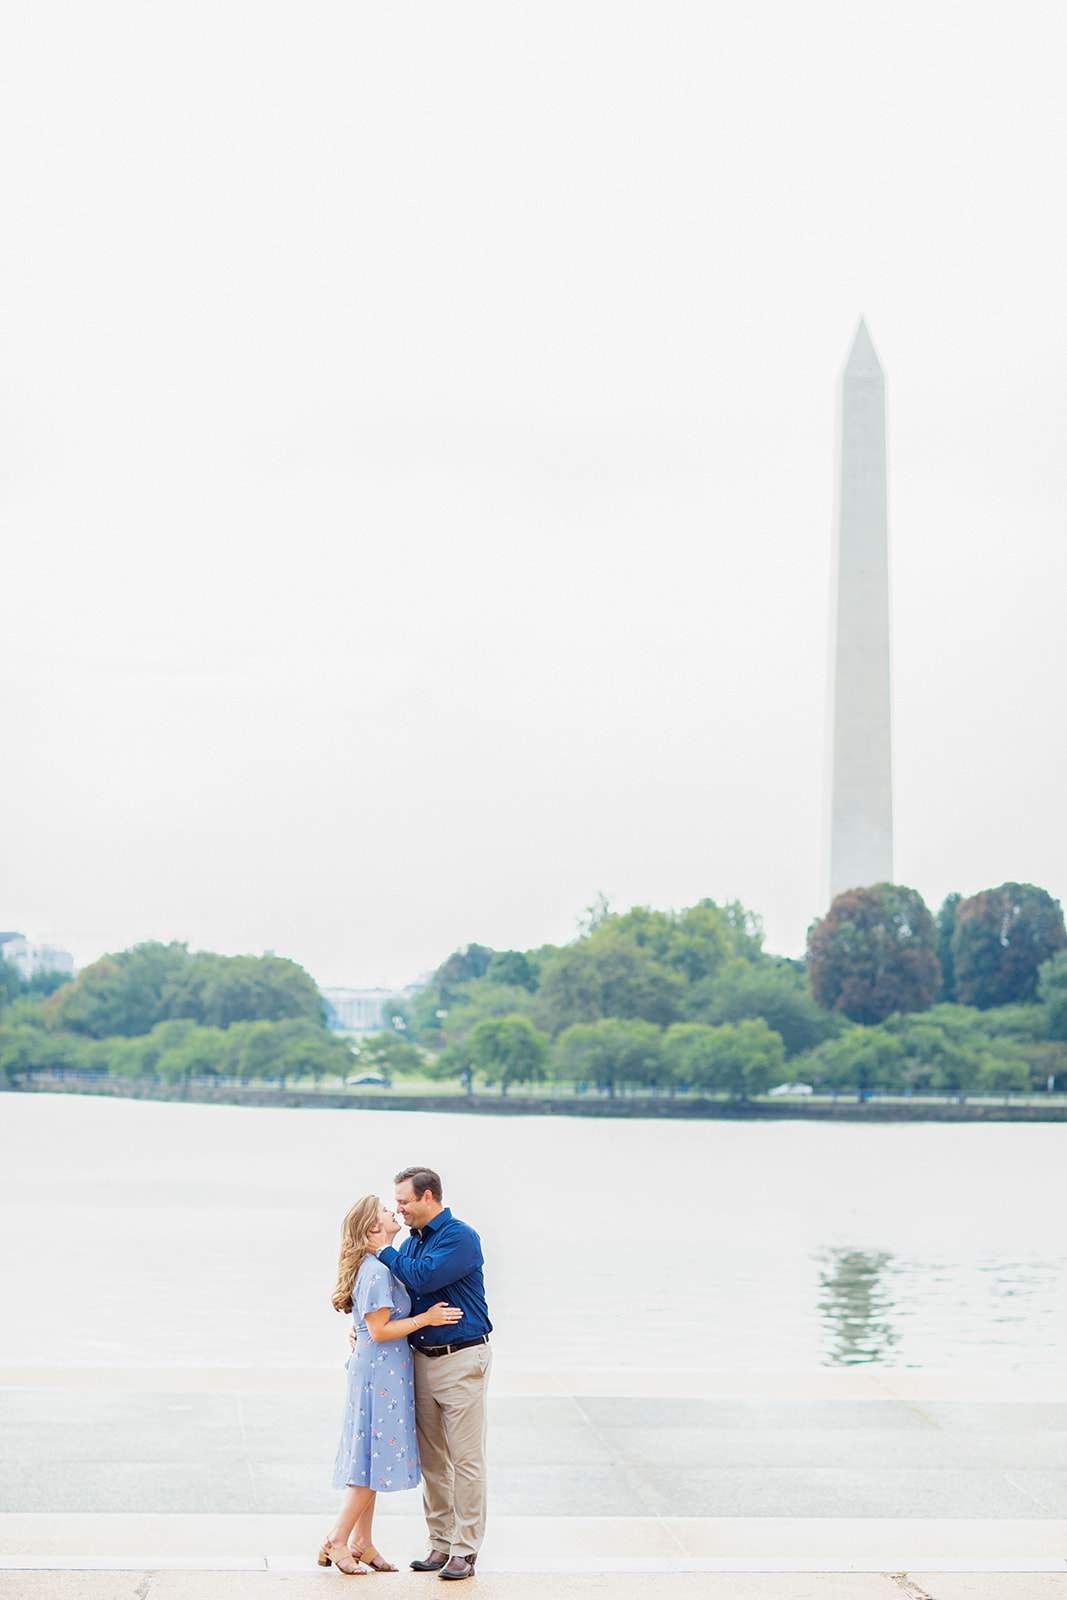 Kathryn  Charlies Engagement Shoot at the Jefferson Memorial - Image Property of www.j-dphoto.com